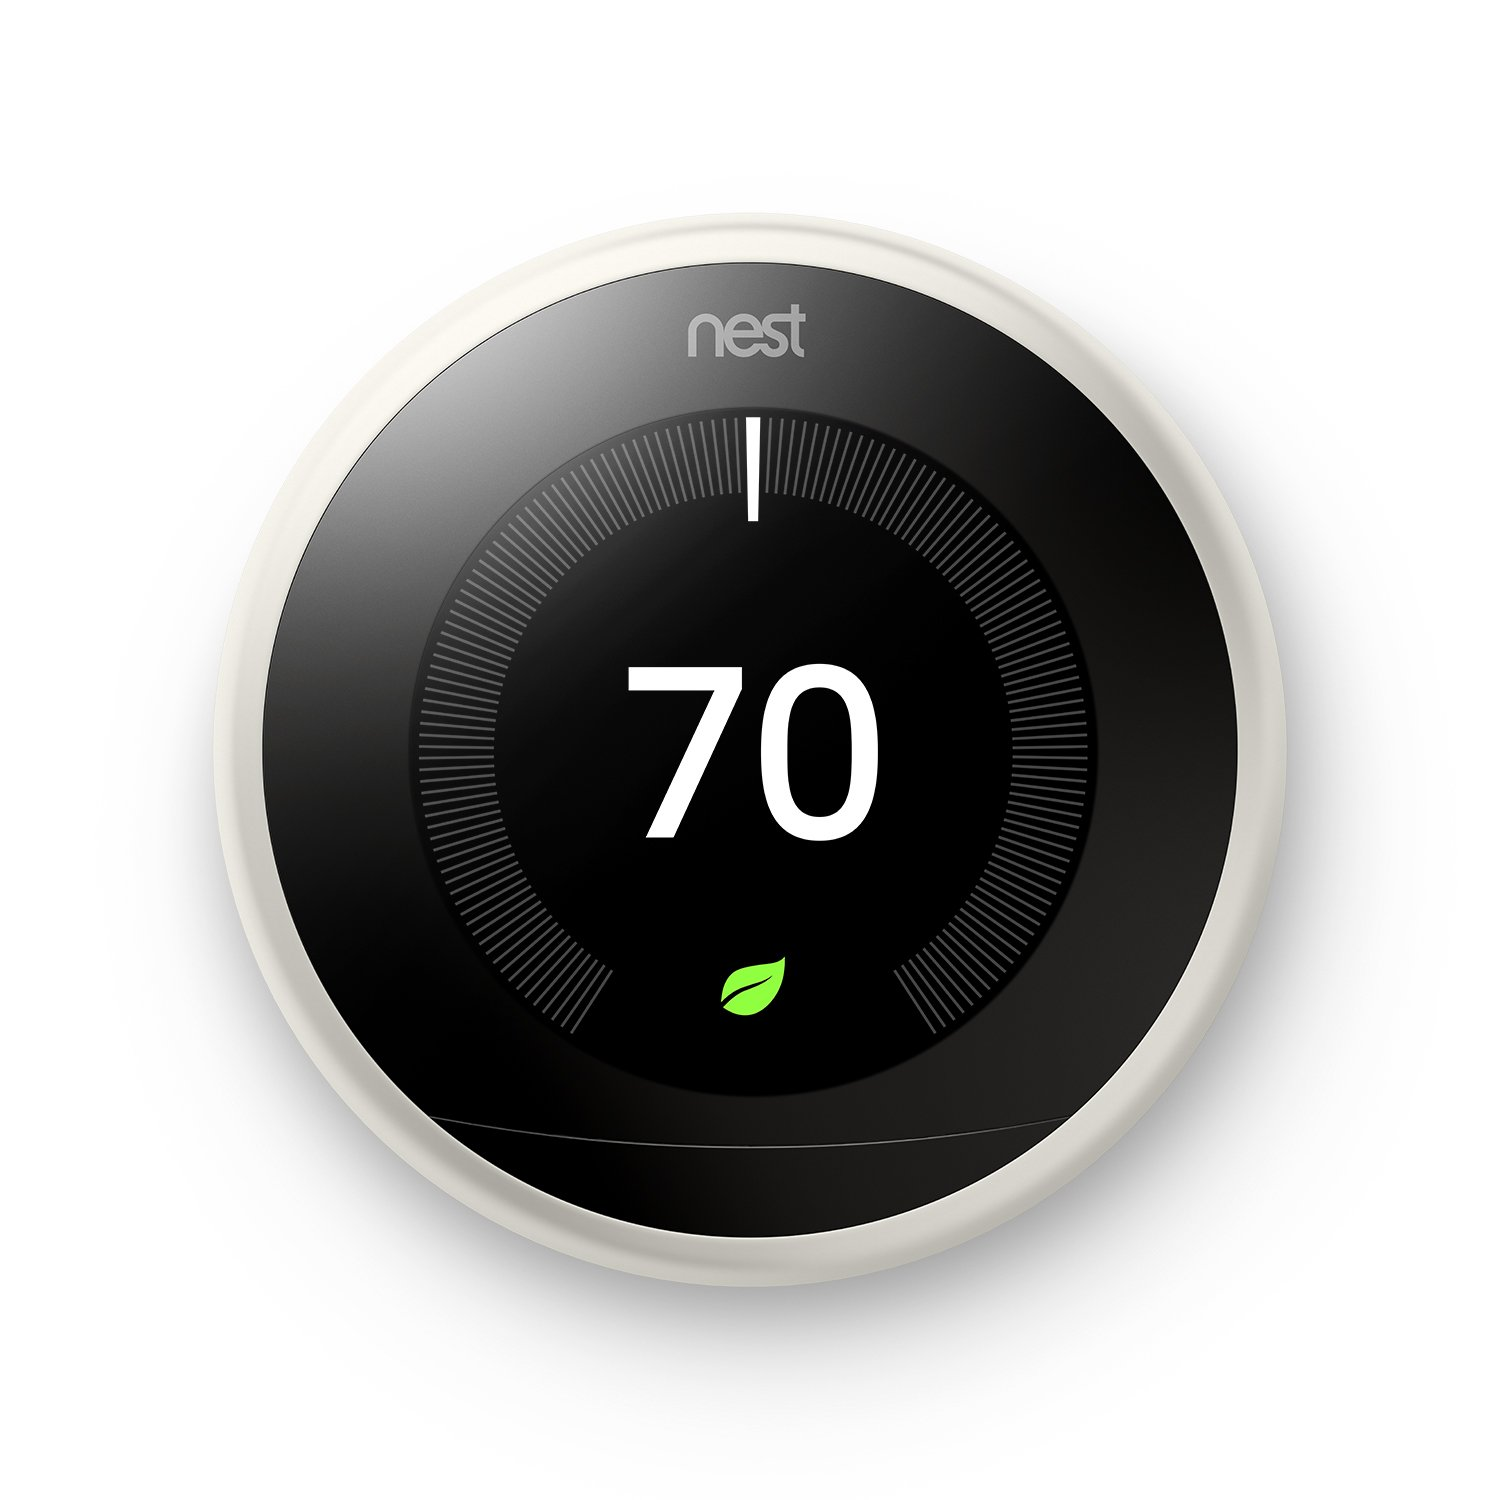 Nest T3017US Learning Thermostat, Easy Temperature Control for Every Room in Your House, White (Third Generation), Works with Alexa Small